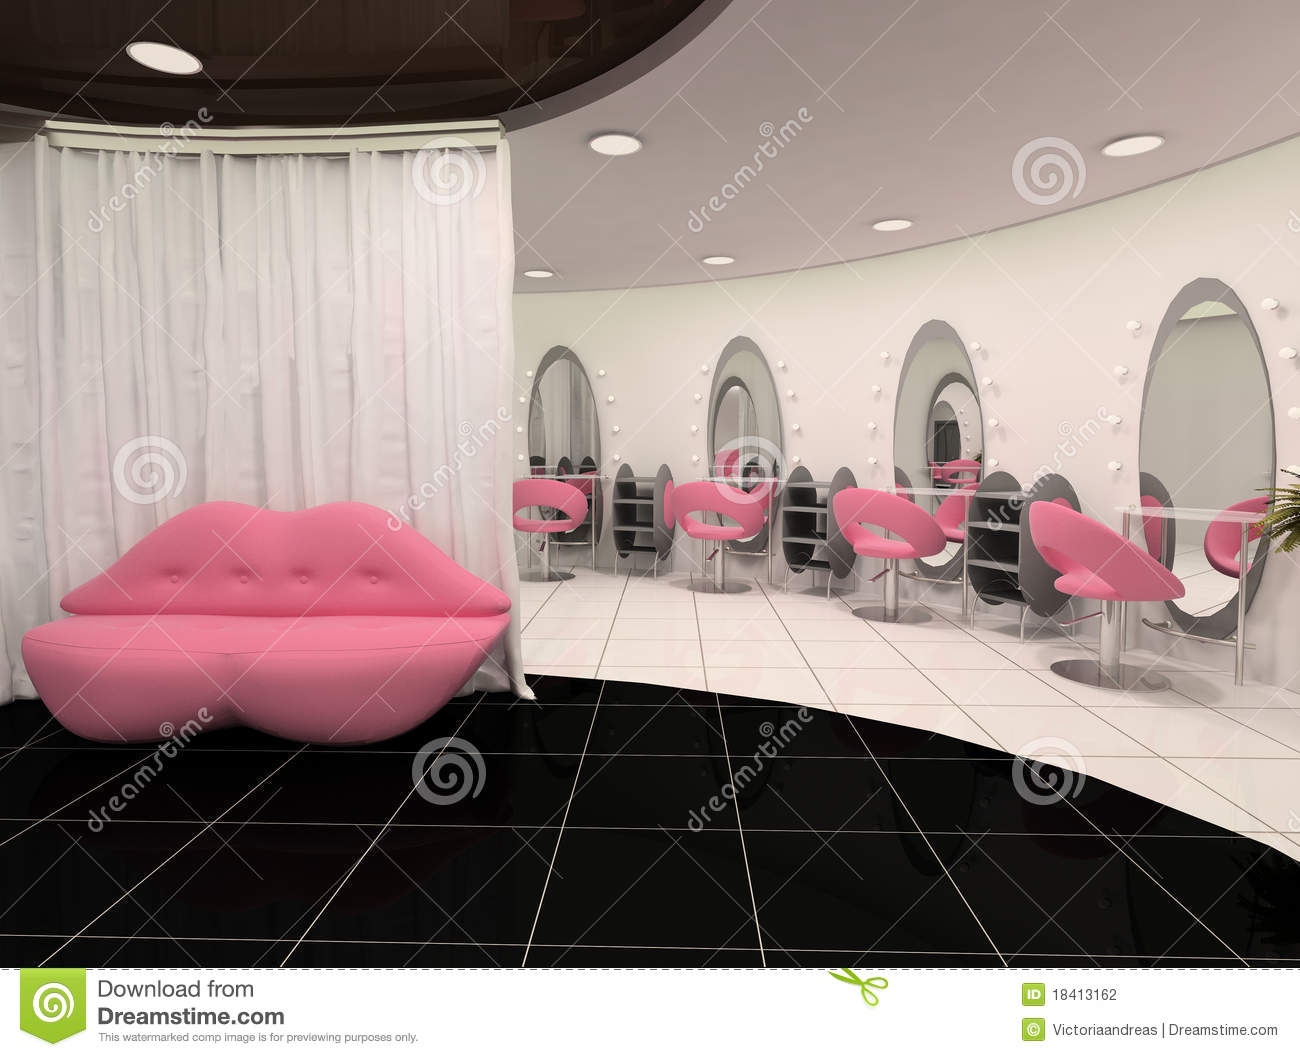 Outlook of stylish beauty salon stock photography image for A beautiful you salon